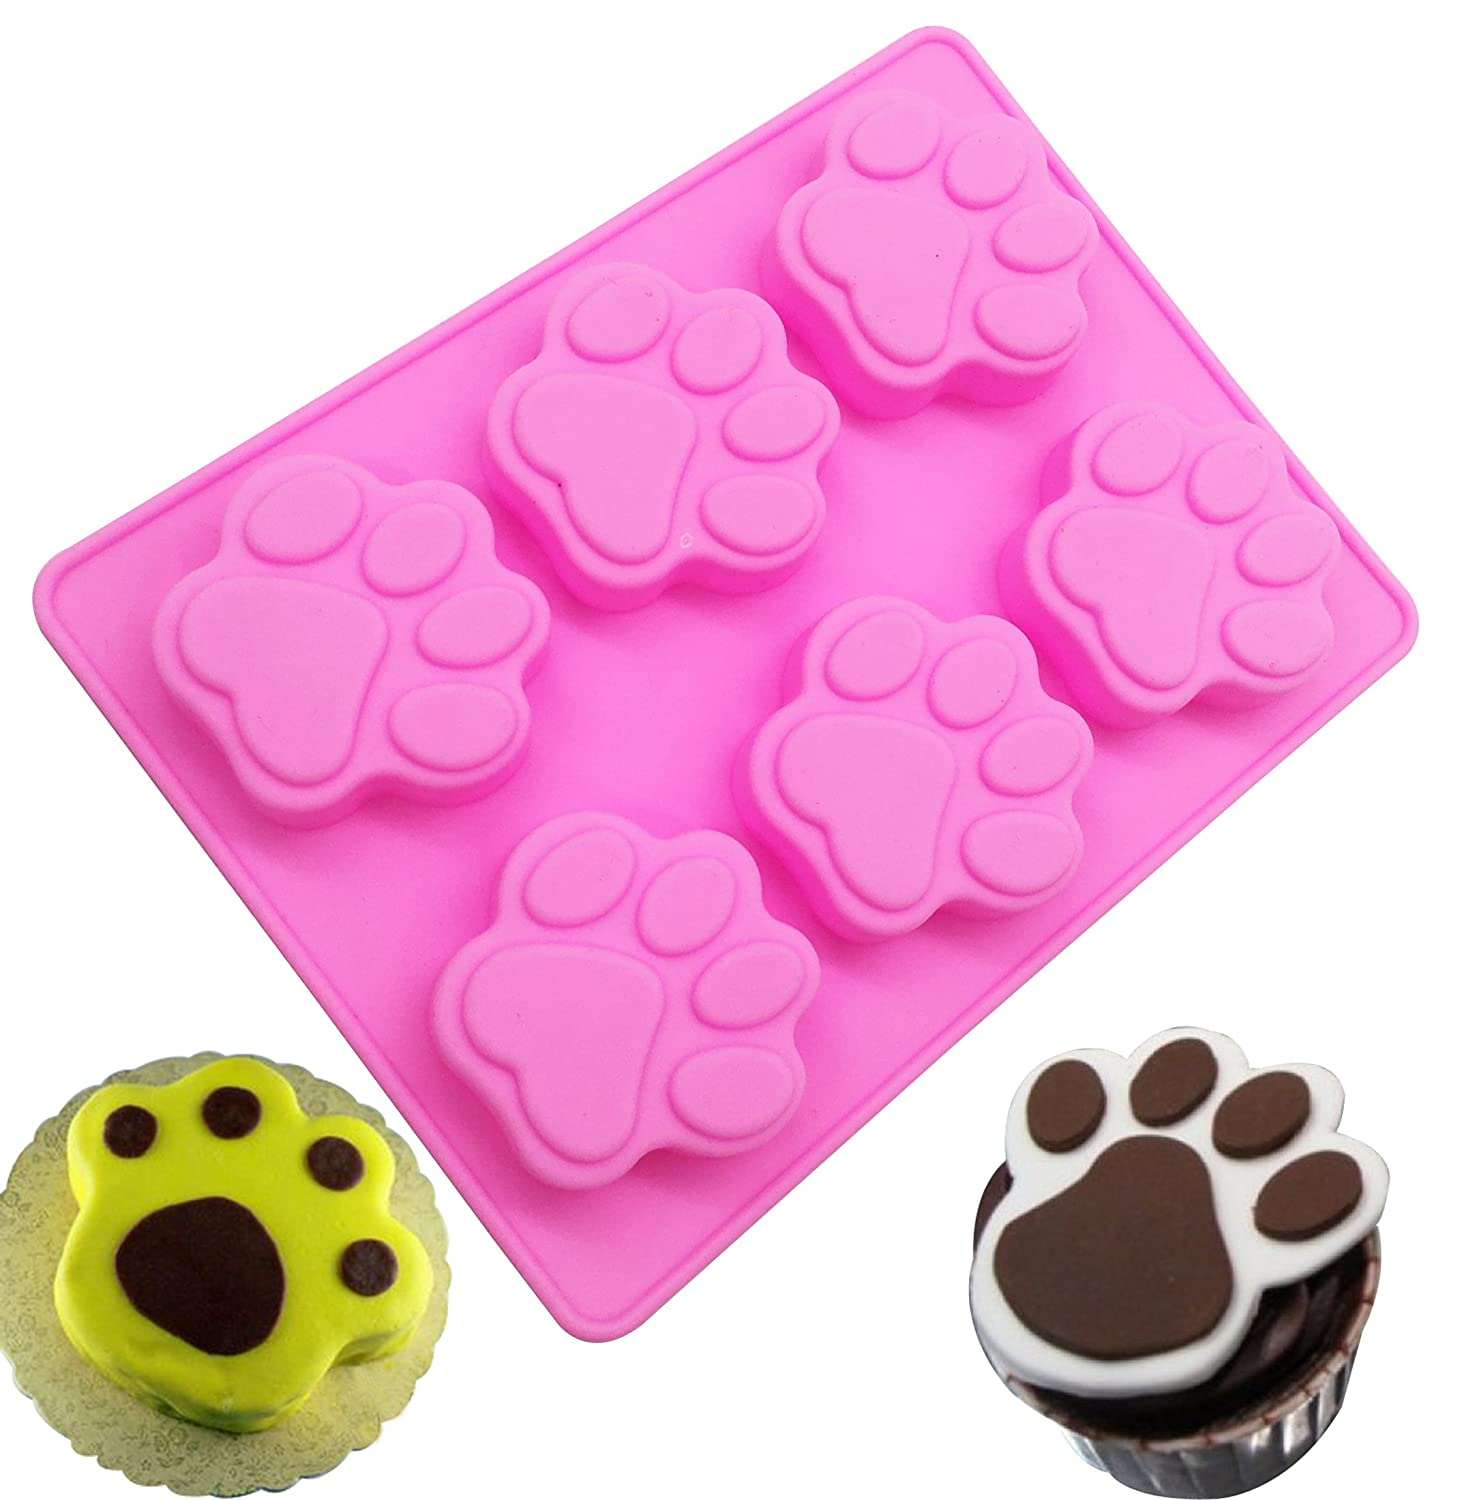 Dog Claw Silicone Cake Mold, KOOTIPS Soap Mold Ice Mold Silicone Cake Baking Mold Cake Pan Muffin Cups Handmade Soap Moulds DIY Tool Kootips-1-3012